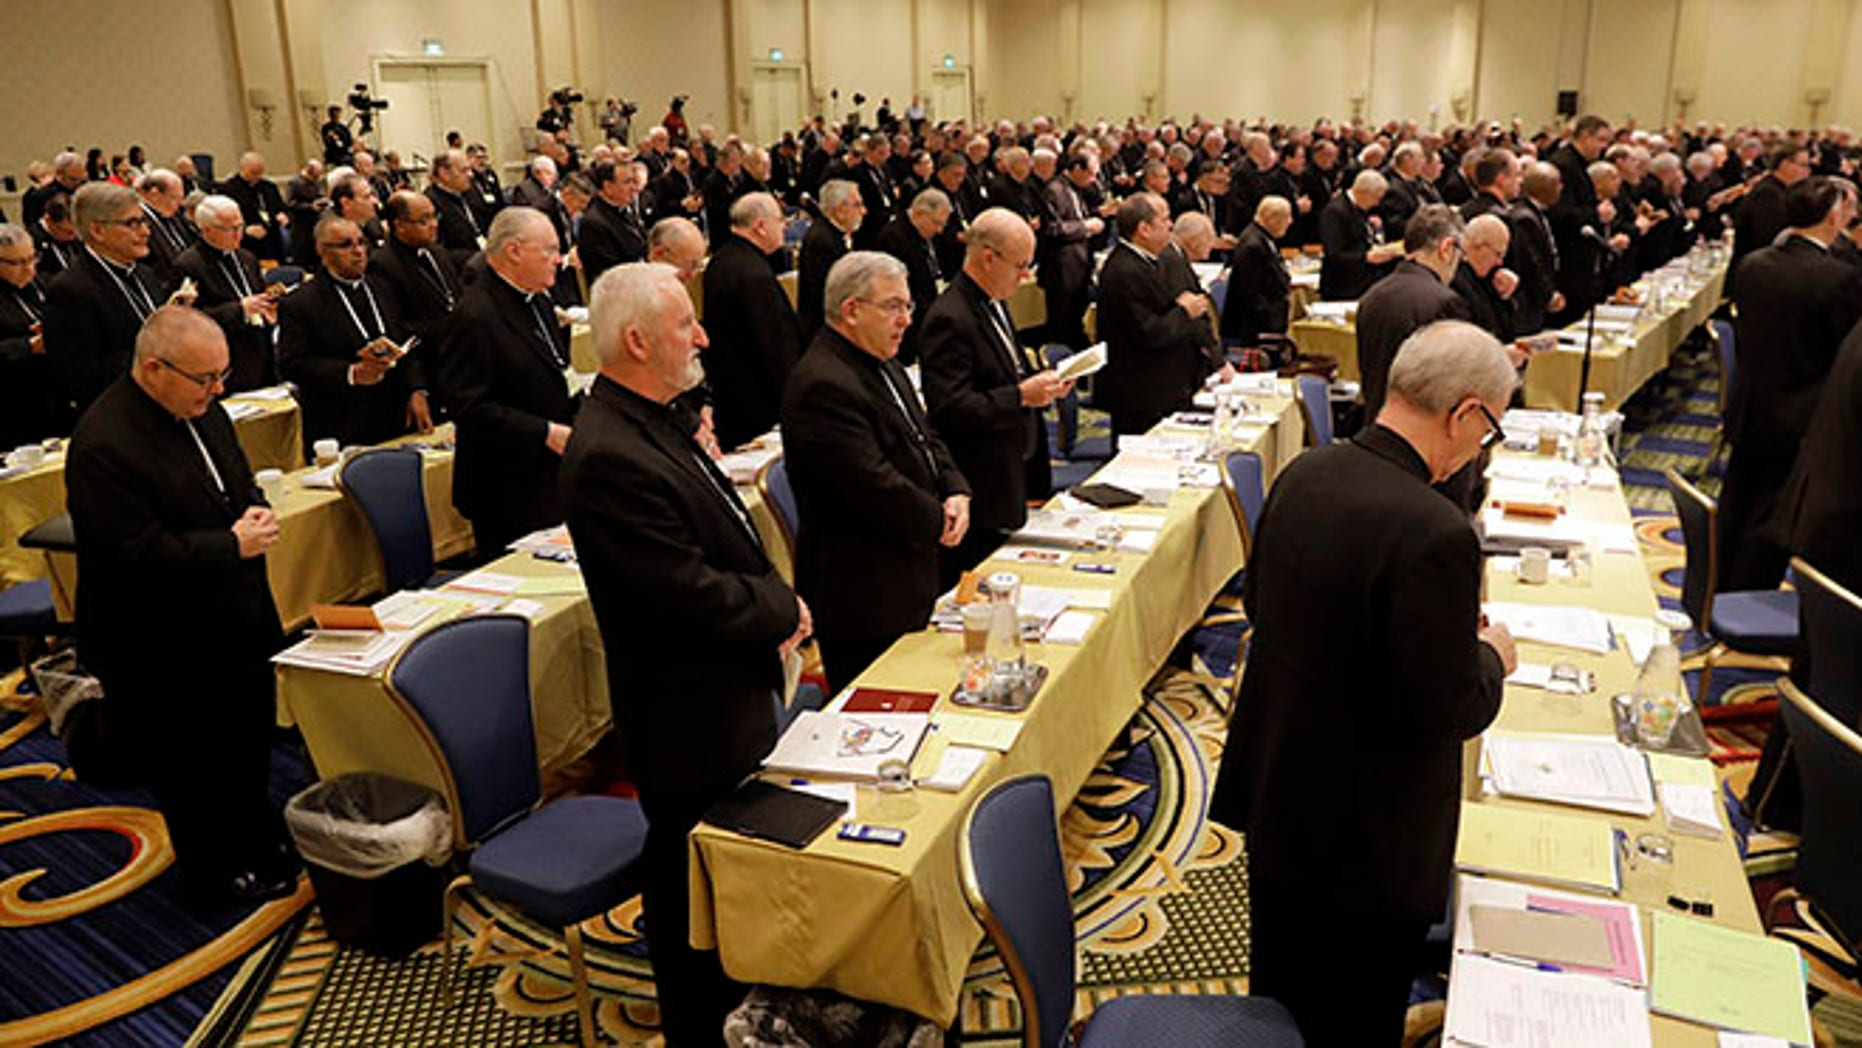 Members of the United States Conference of Catholic Bishops recite a group prayer during the USCCB's annual fall meeting in Baltimore, Tuesday, Nov. 15, 2016. Cardinal Daniel DiNardo of the Archdiocese of Galveston-Houston was elected Tuesday as president of the USCCB. (AP Photo/Patrick Semansky)